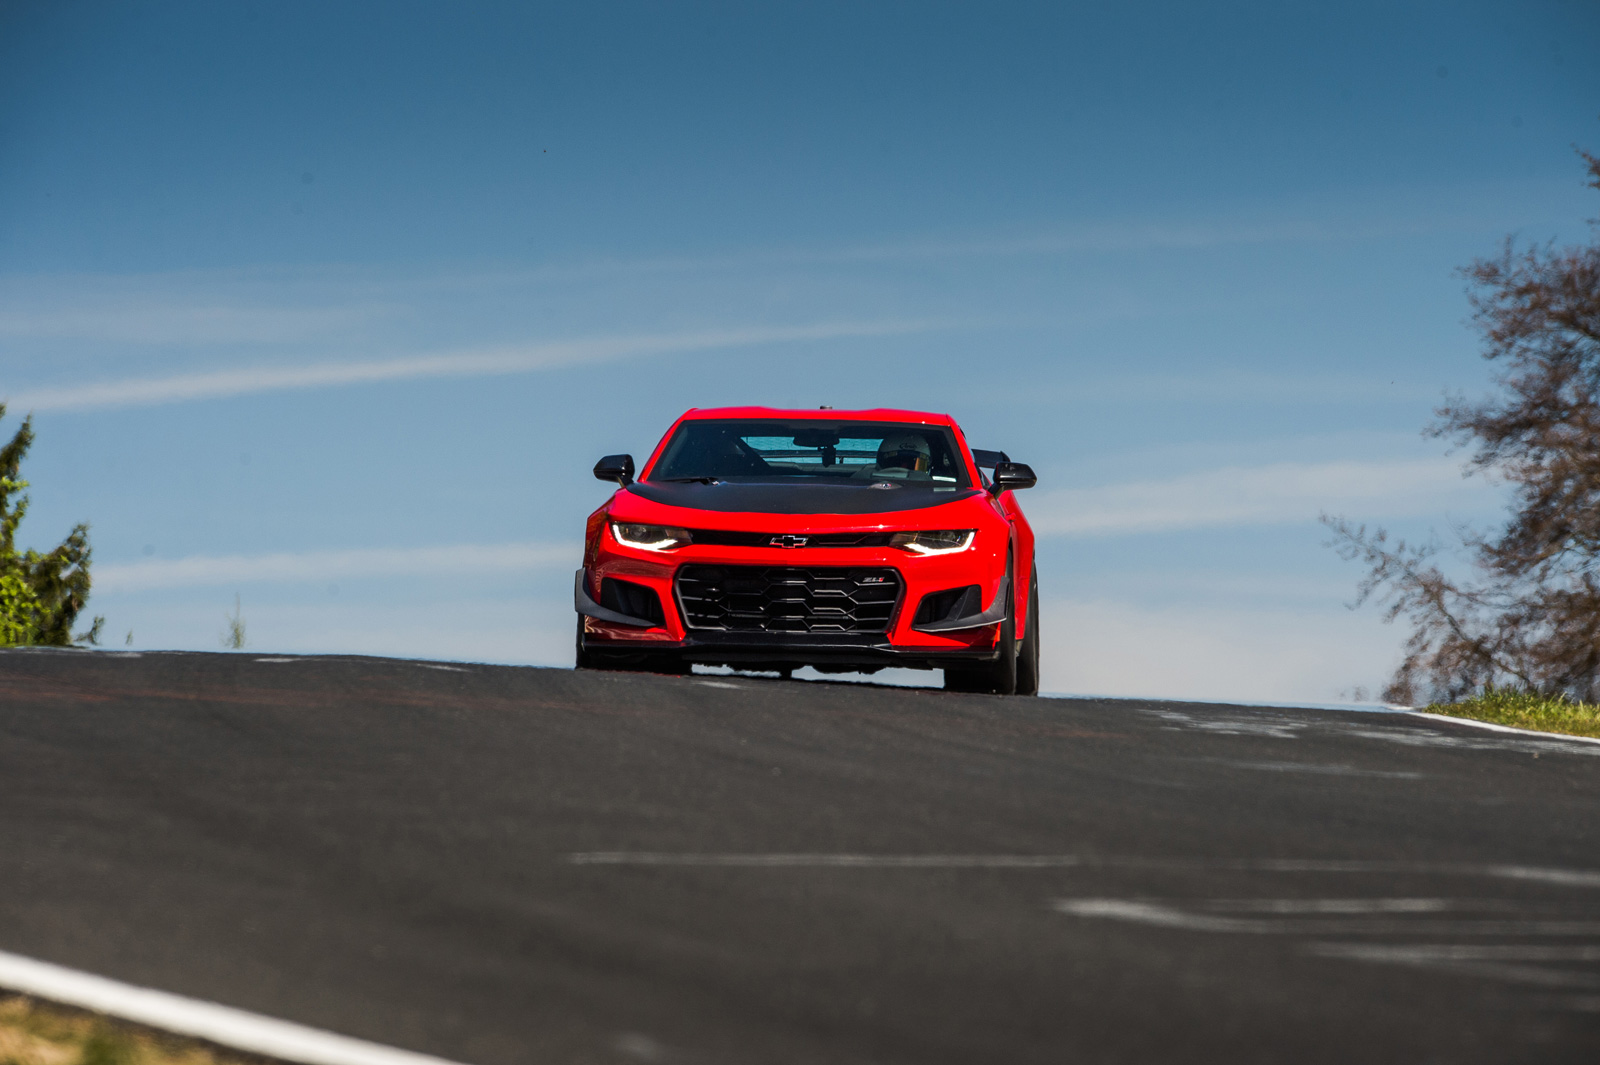 Impressive Cars The Chevrolet Camaro Killed At The